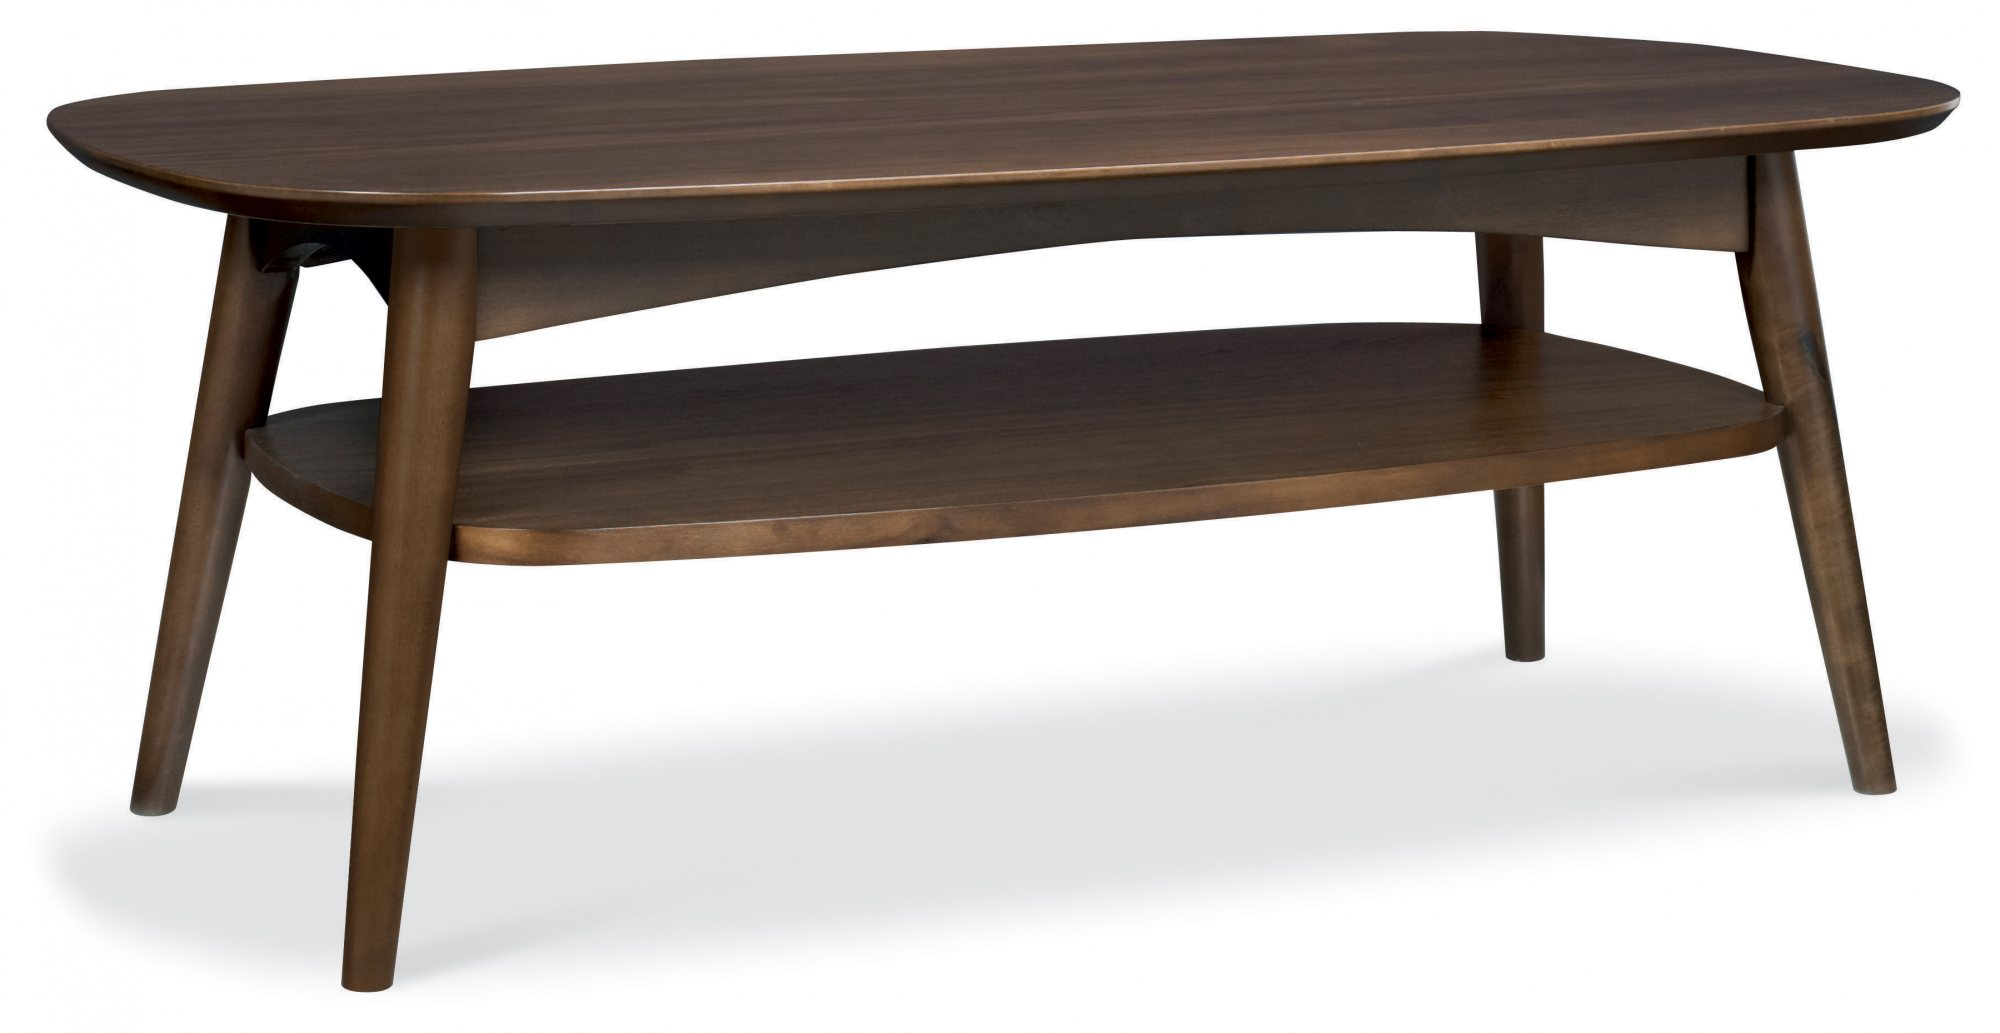 RETRO WALNUT COFFEE TABLE WITH SHELF L109cm x D59cm x H40cm